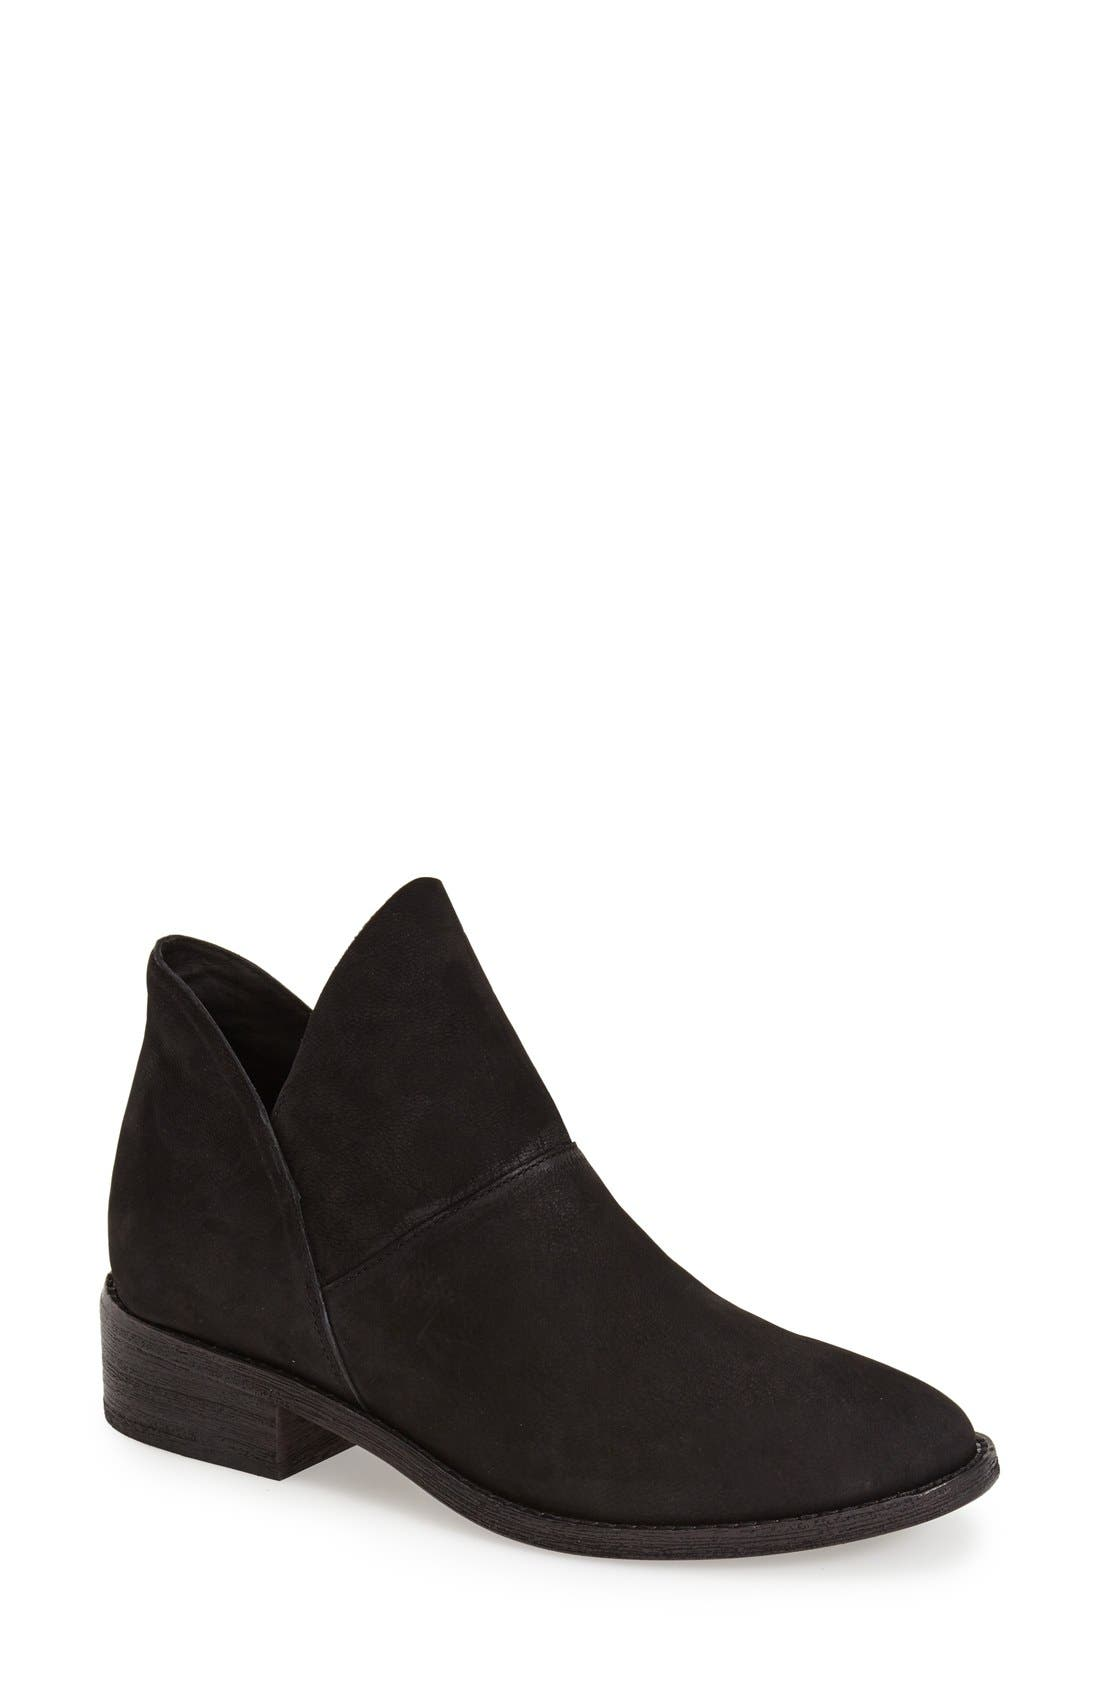 'Leaf' Bootie,                         Main,                         color, BLACK